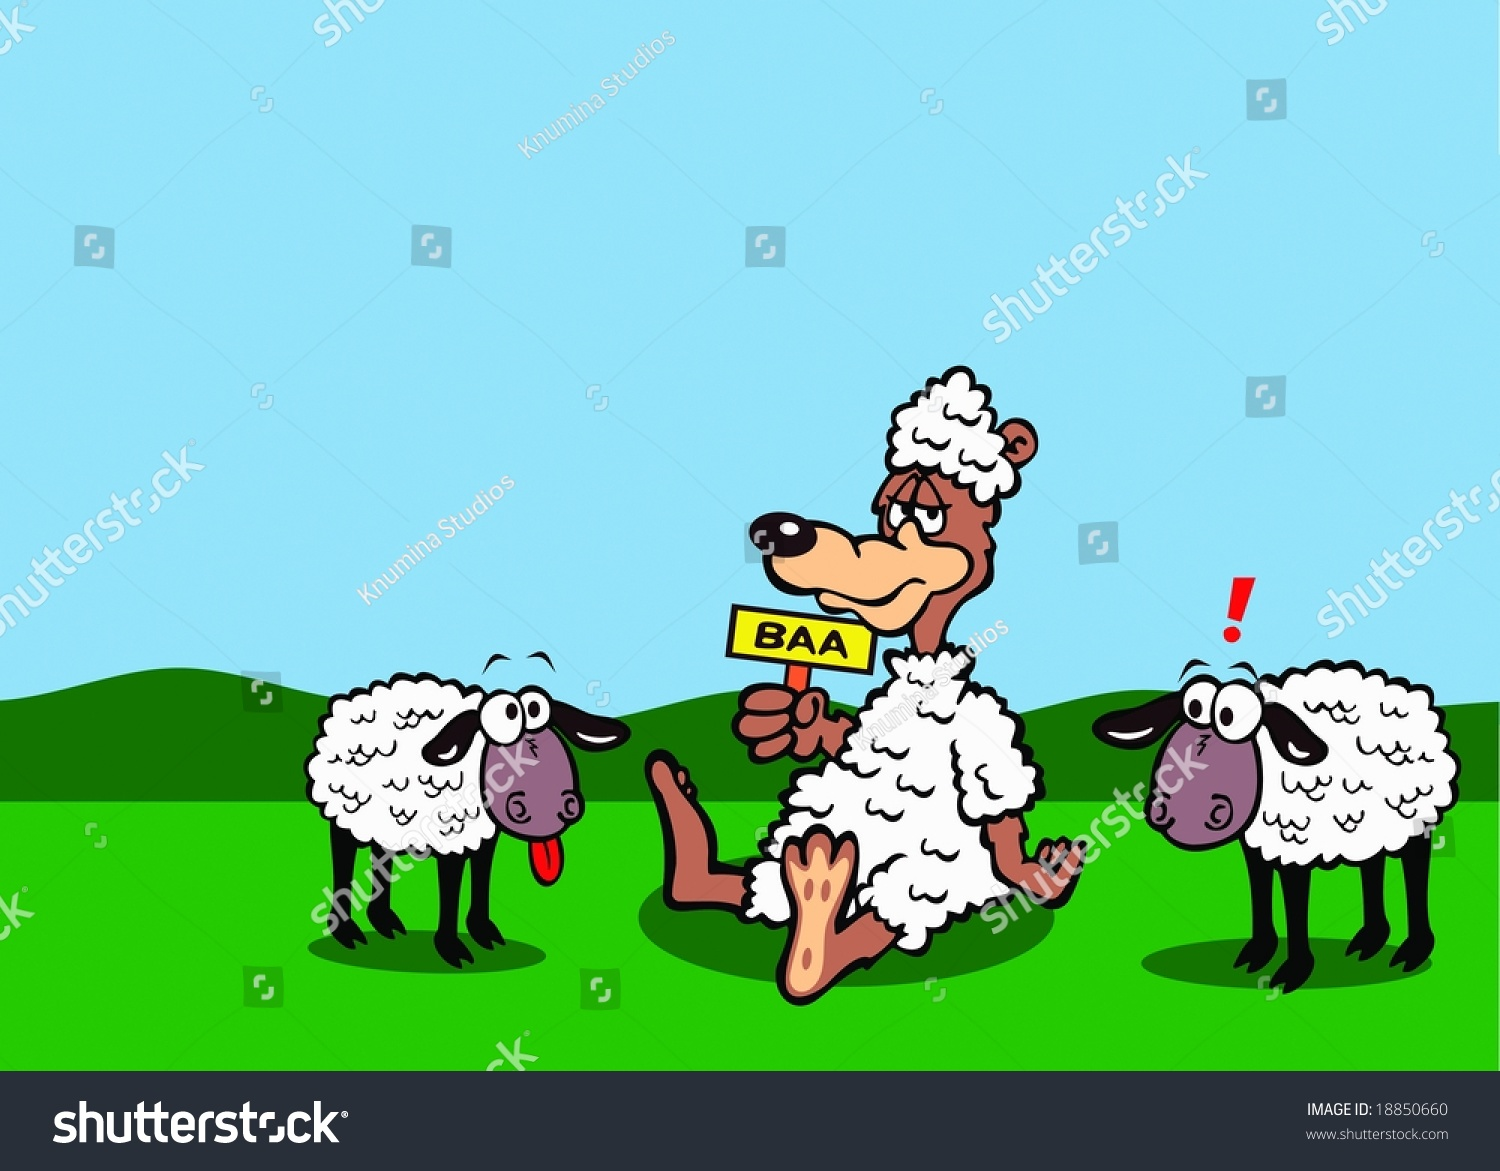 illustration wolf sheeps clothing stock illustration